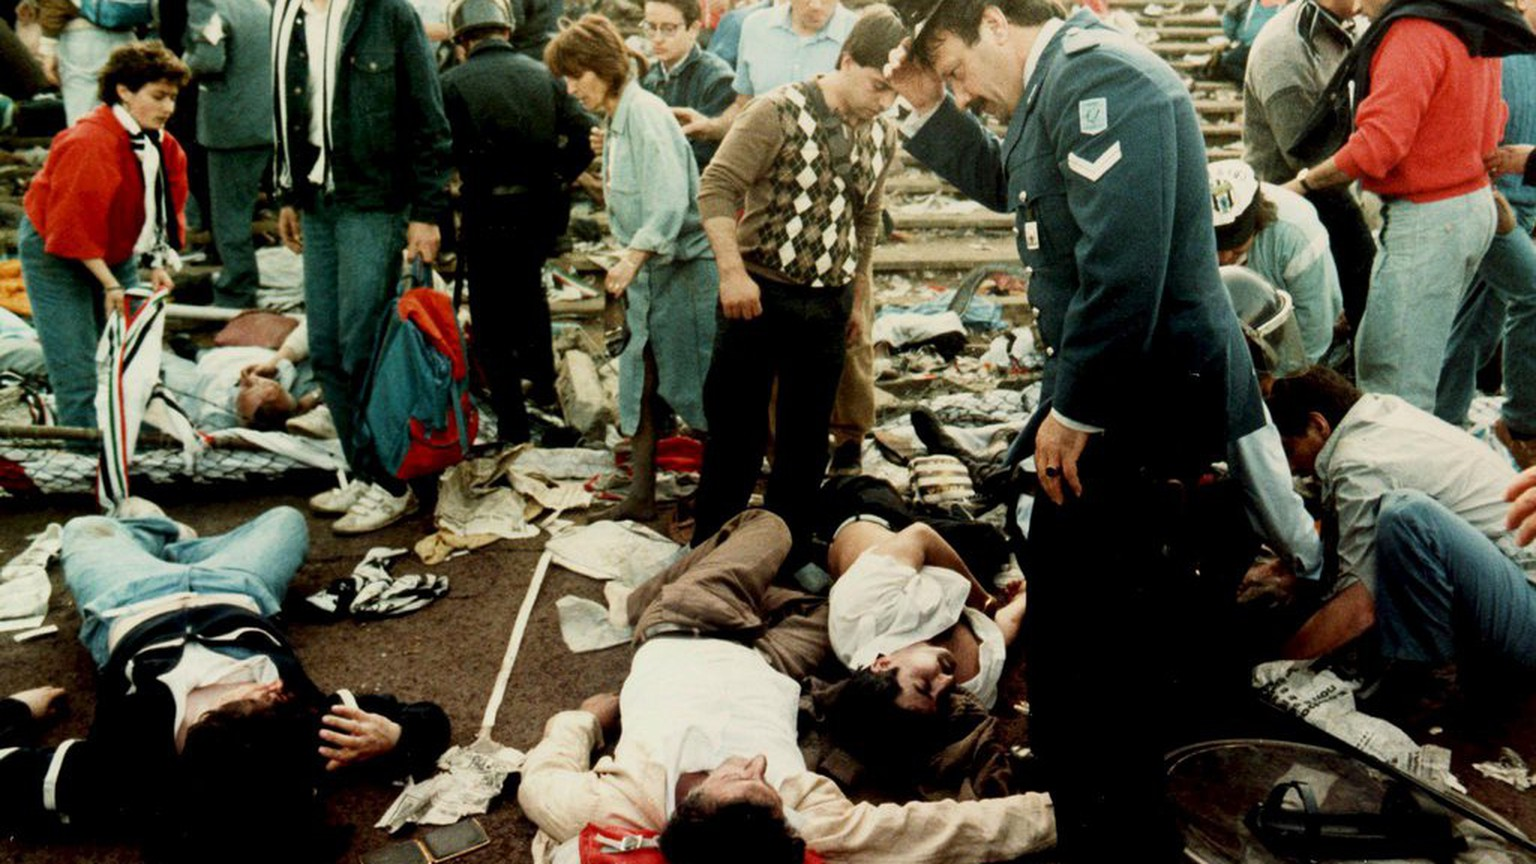 Photo dated 29 May 1985 shows injured spectators in the Heysel stadium in Brussels after violent clashes between Juventus Turin and Liverpool fans prior to the European Champions Cup final. The Heysel stadium tragedy marks one of the darkest moments in the history of soccer.  39 people died and more than 400 were injured when a wall collapsed at the stadium in Brussels during violent riots just before the European cup final between Liverpool and Juventus. As a direct result of this event, the English Football Association banned English clubs from participating in UEFA competitions for six years. (KEYSTONE/EPA/Str)